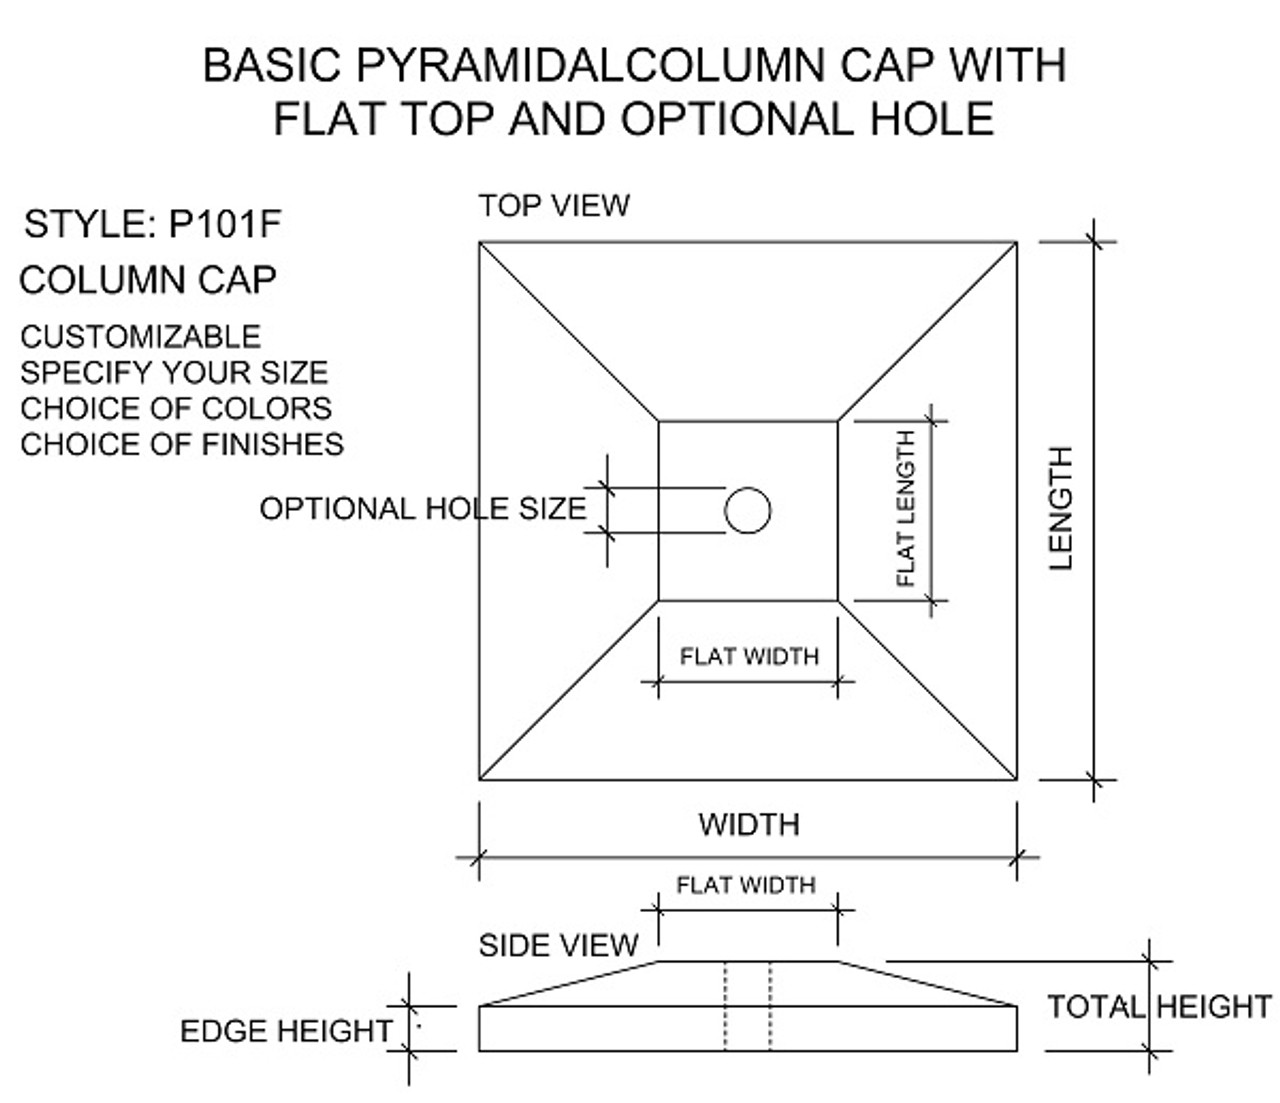 Drawing Pyramidal Peaked Column, Pillar, Post Cap with flat top and optional hole any size